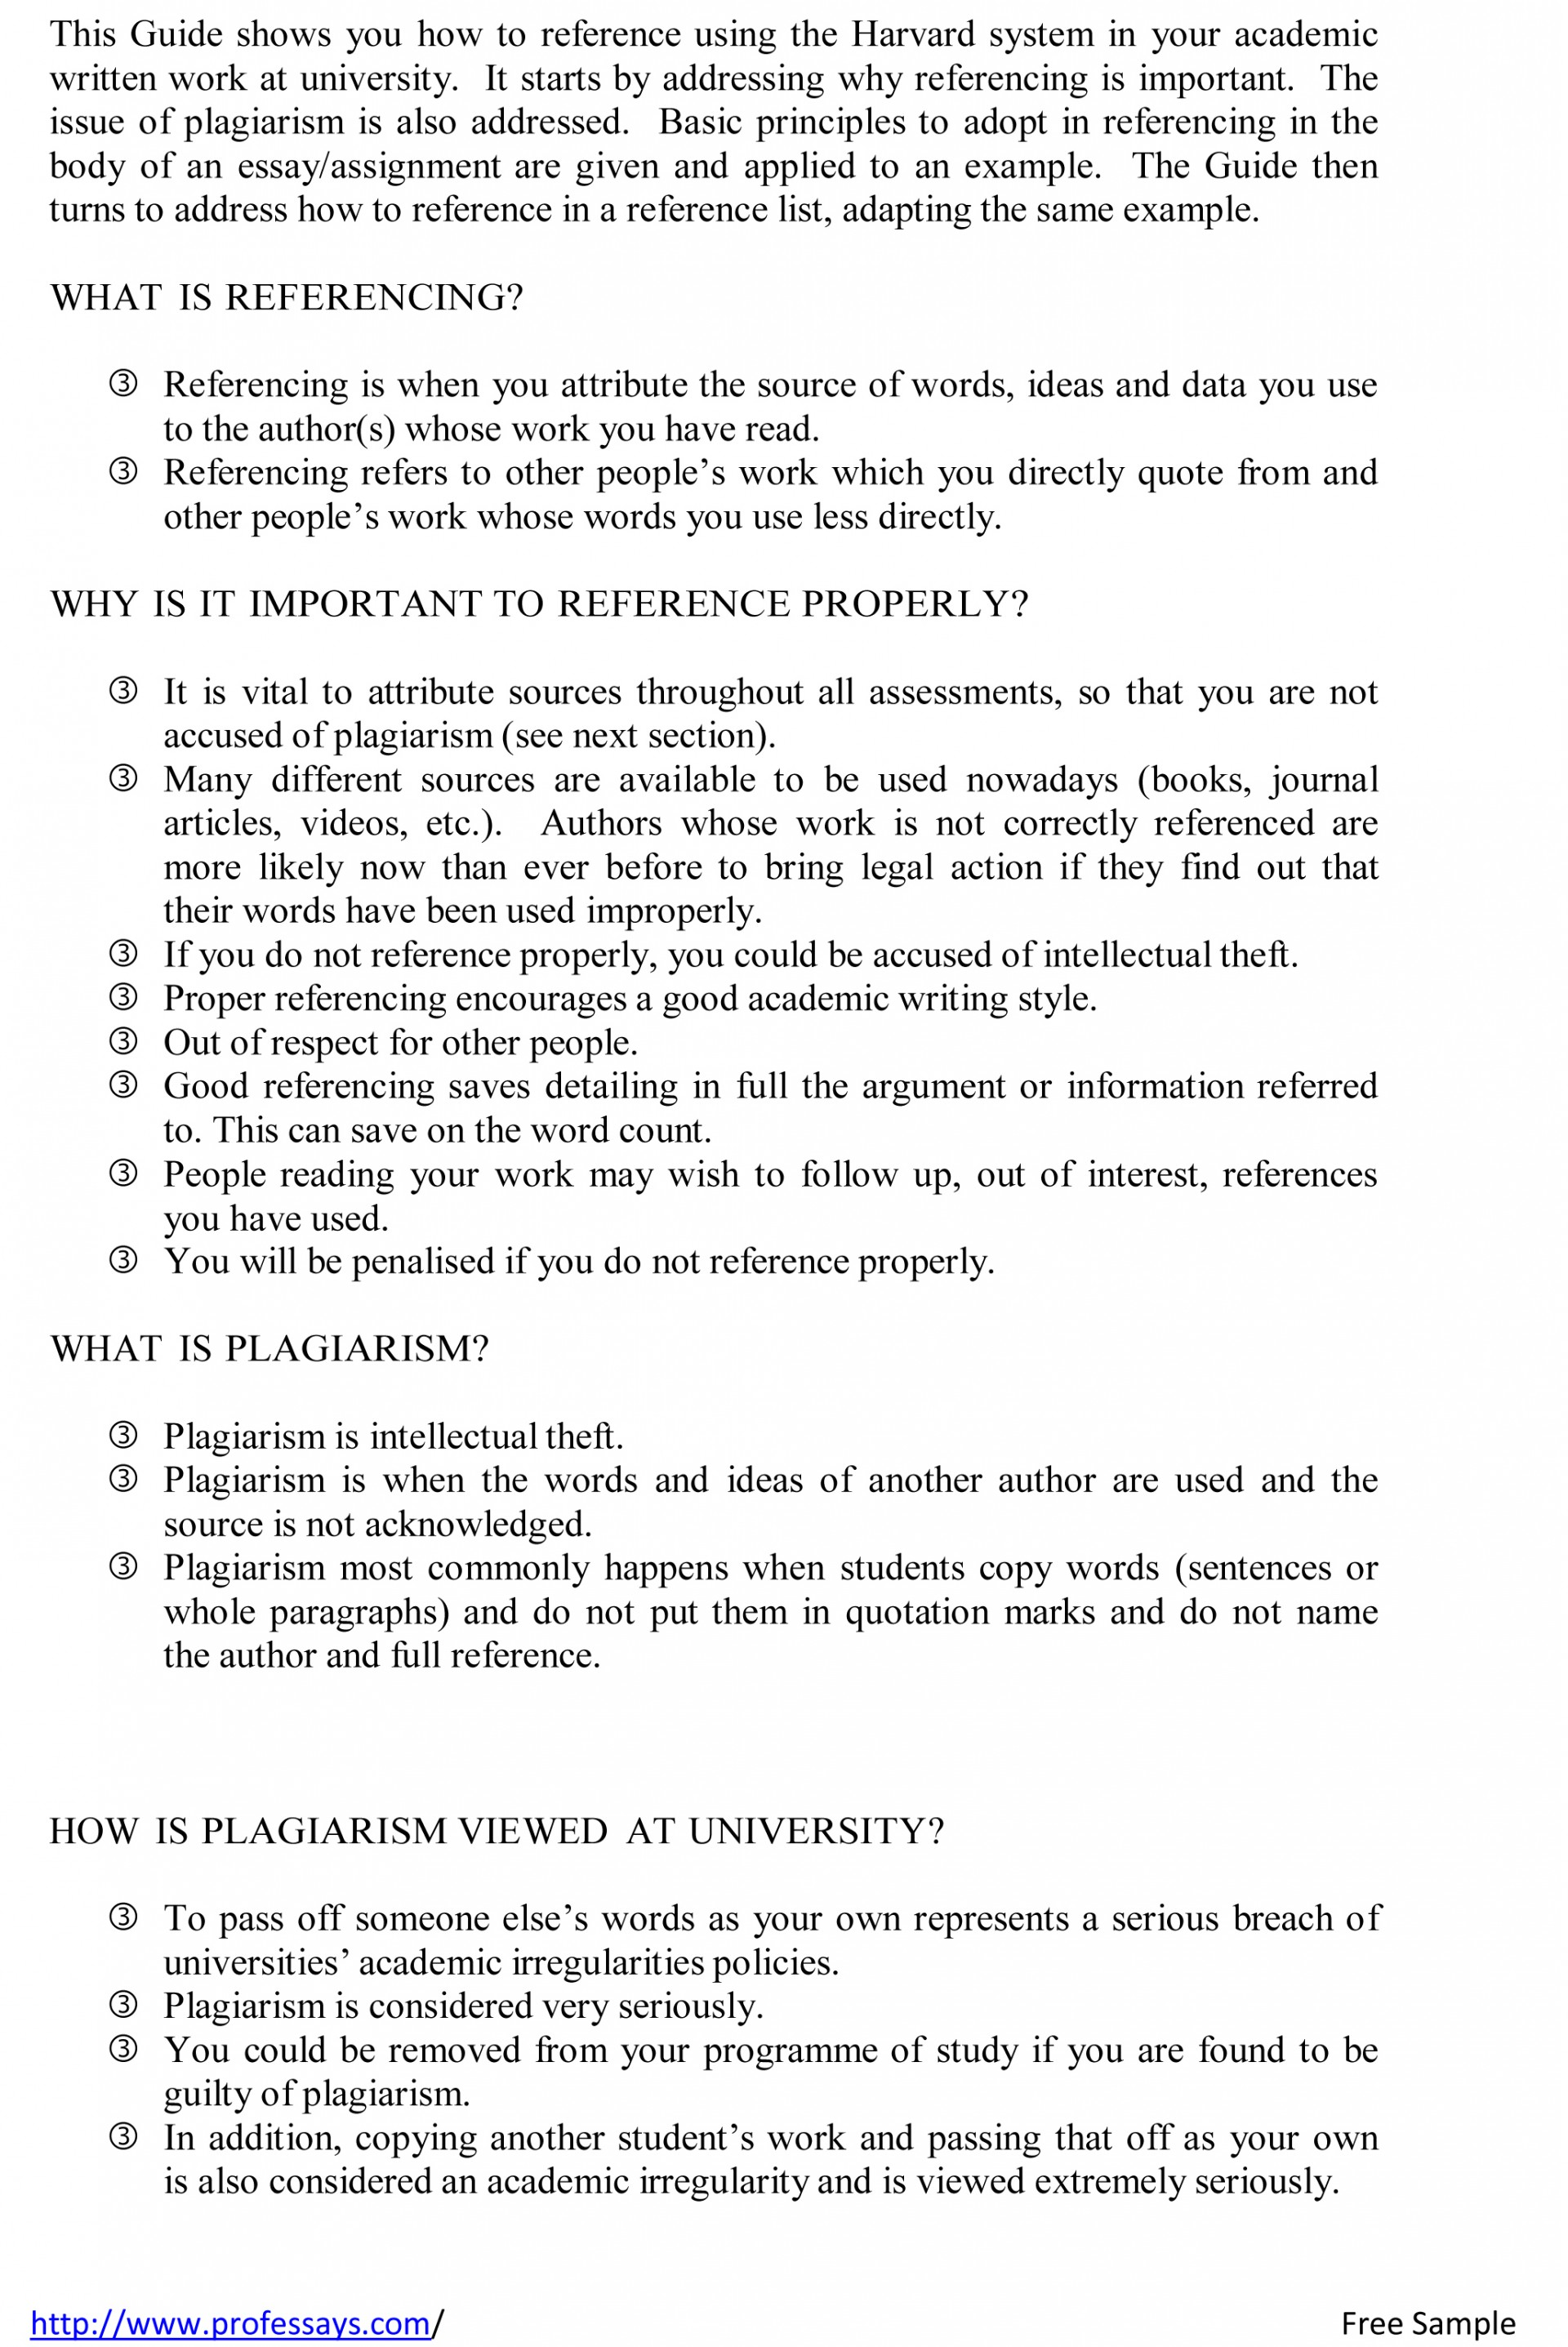 007 Essay Example References Writing Help Academic Essays Fearsome Online Read Buy 1920